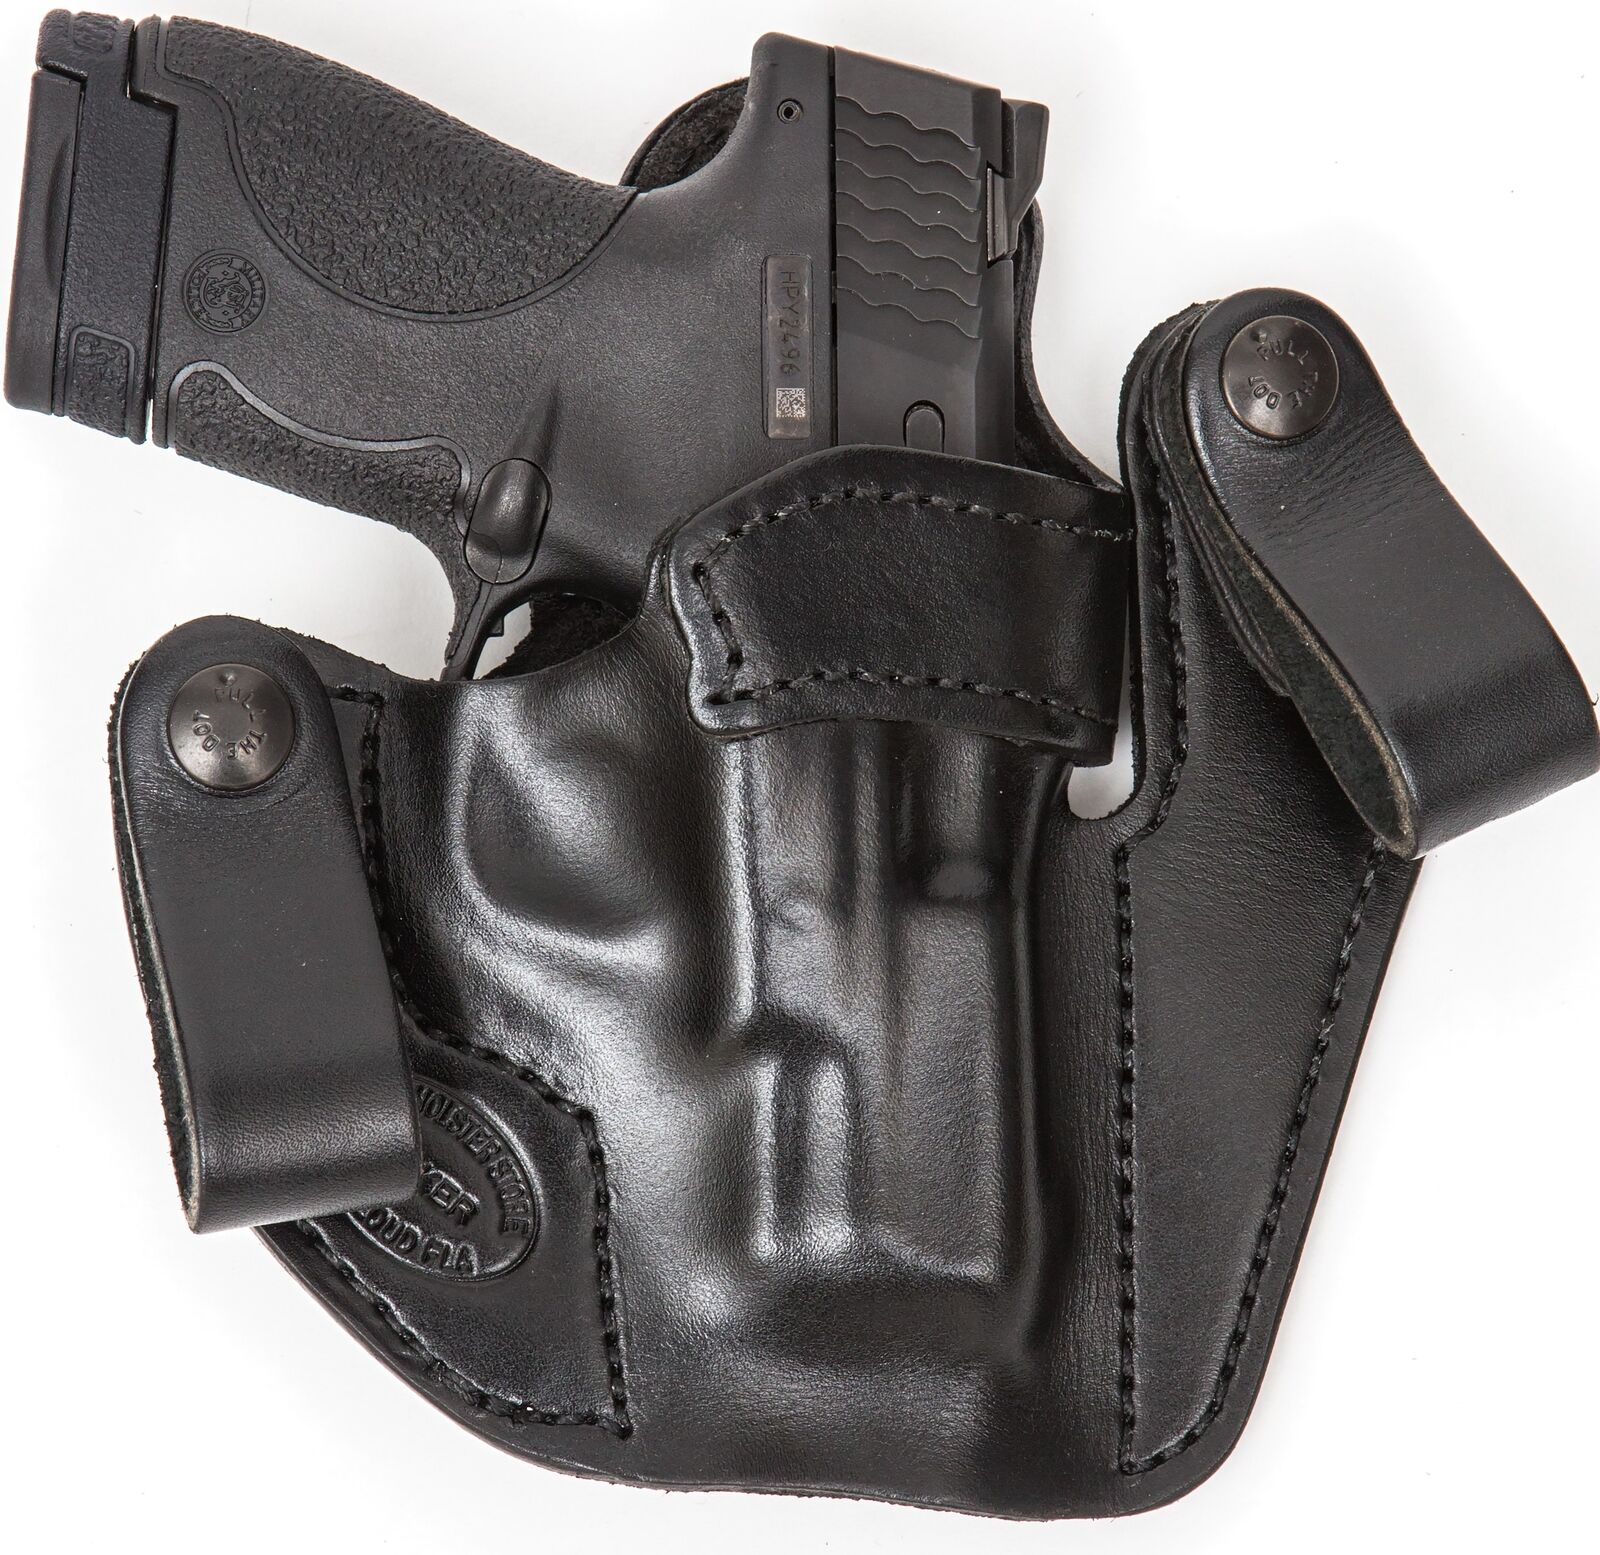 XTREME CARRY RH LH IWB Leather Gun Holster For Citadel 1911 3.5  Rails